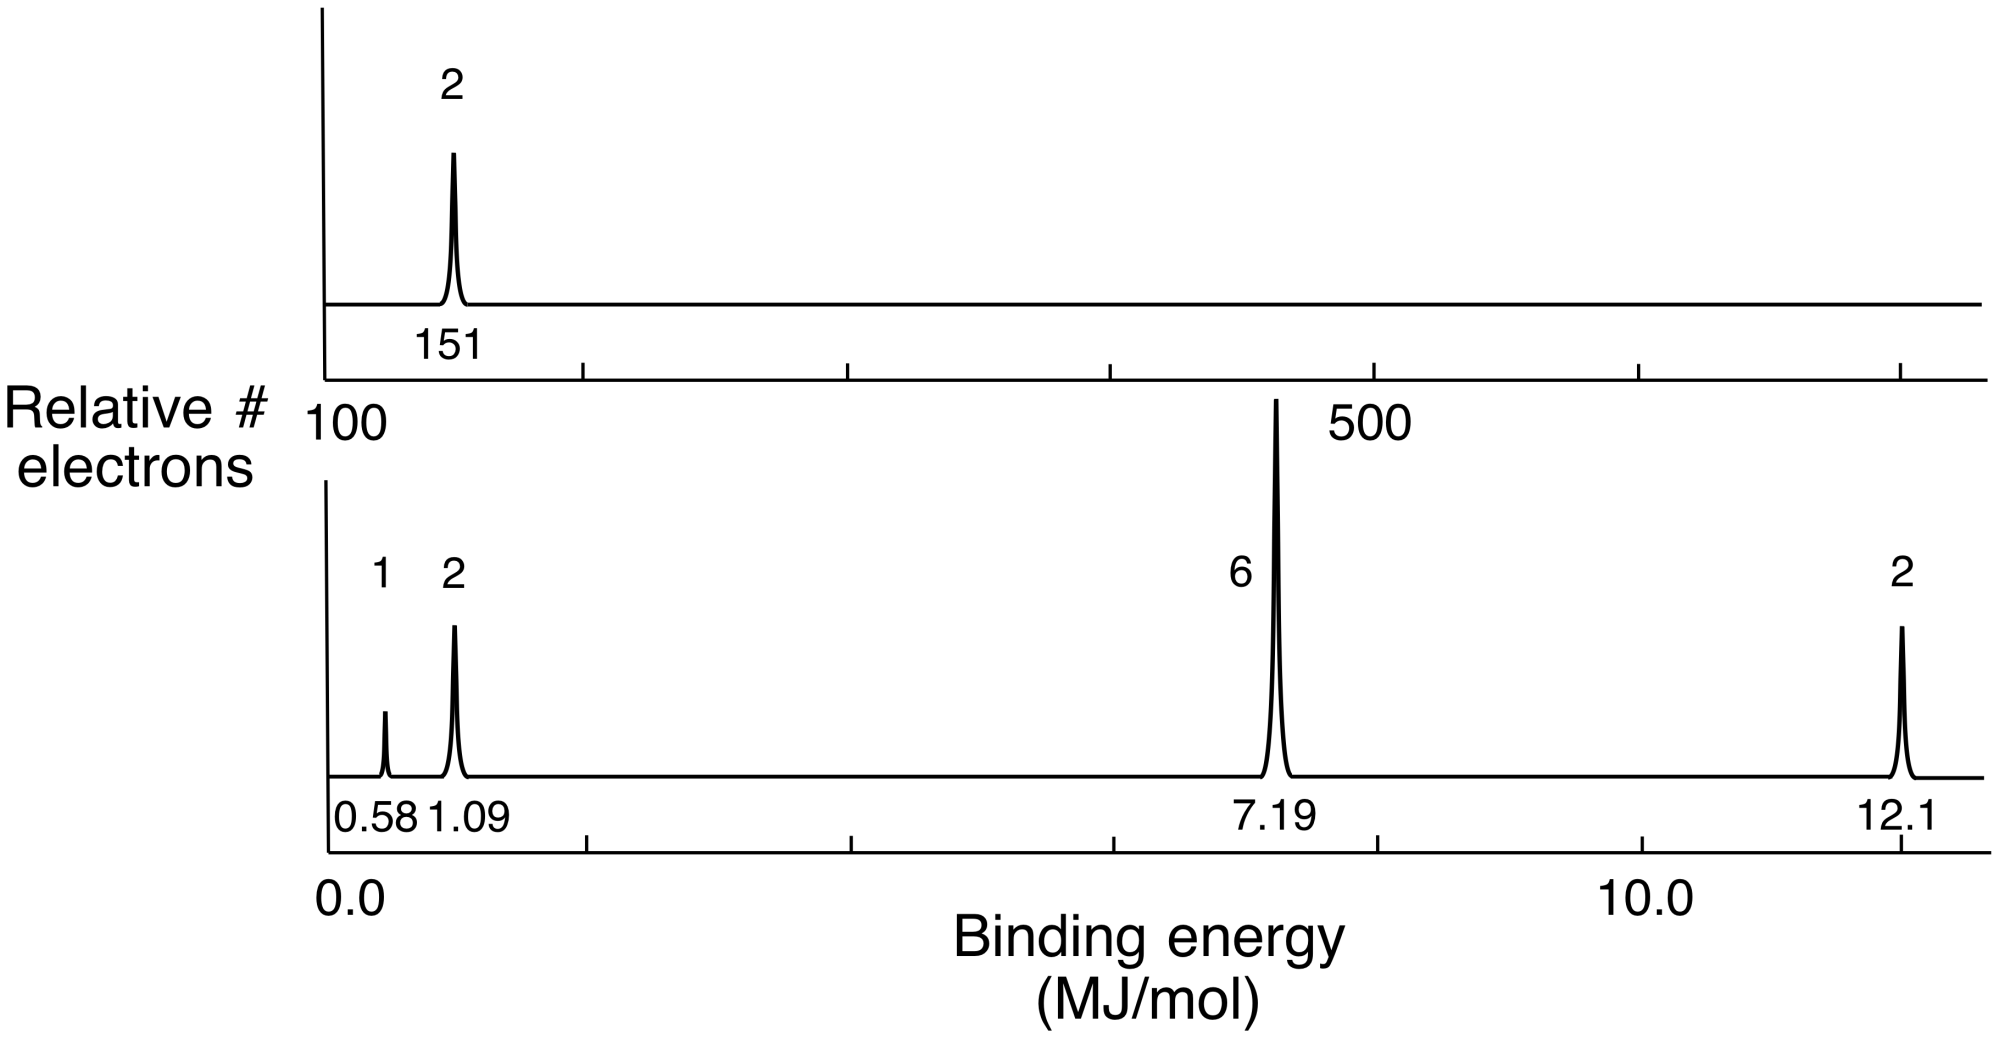 hight resolution of identifying an element based on its pes spectrum